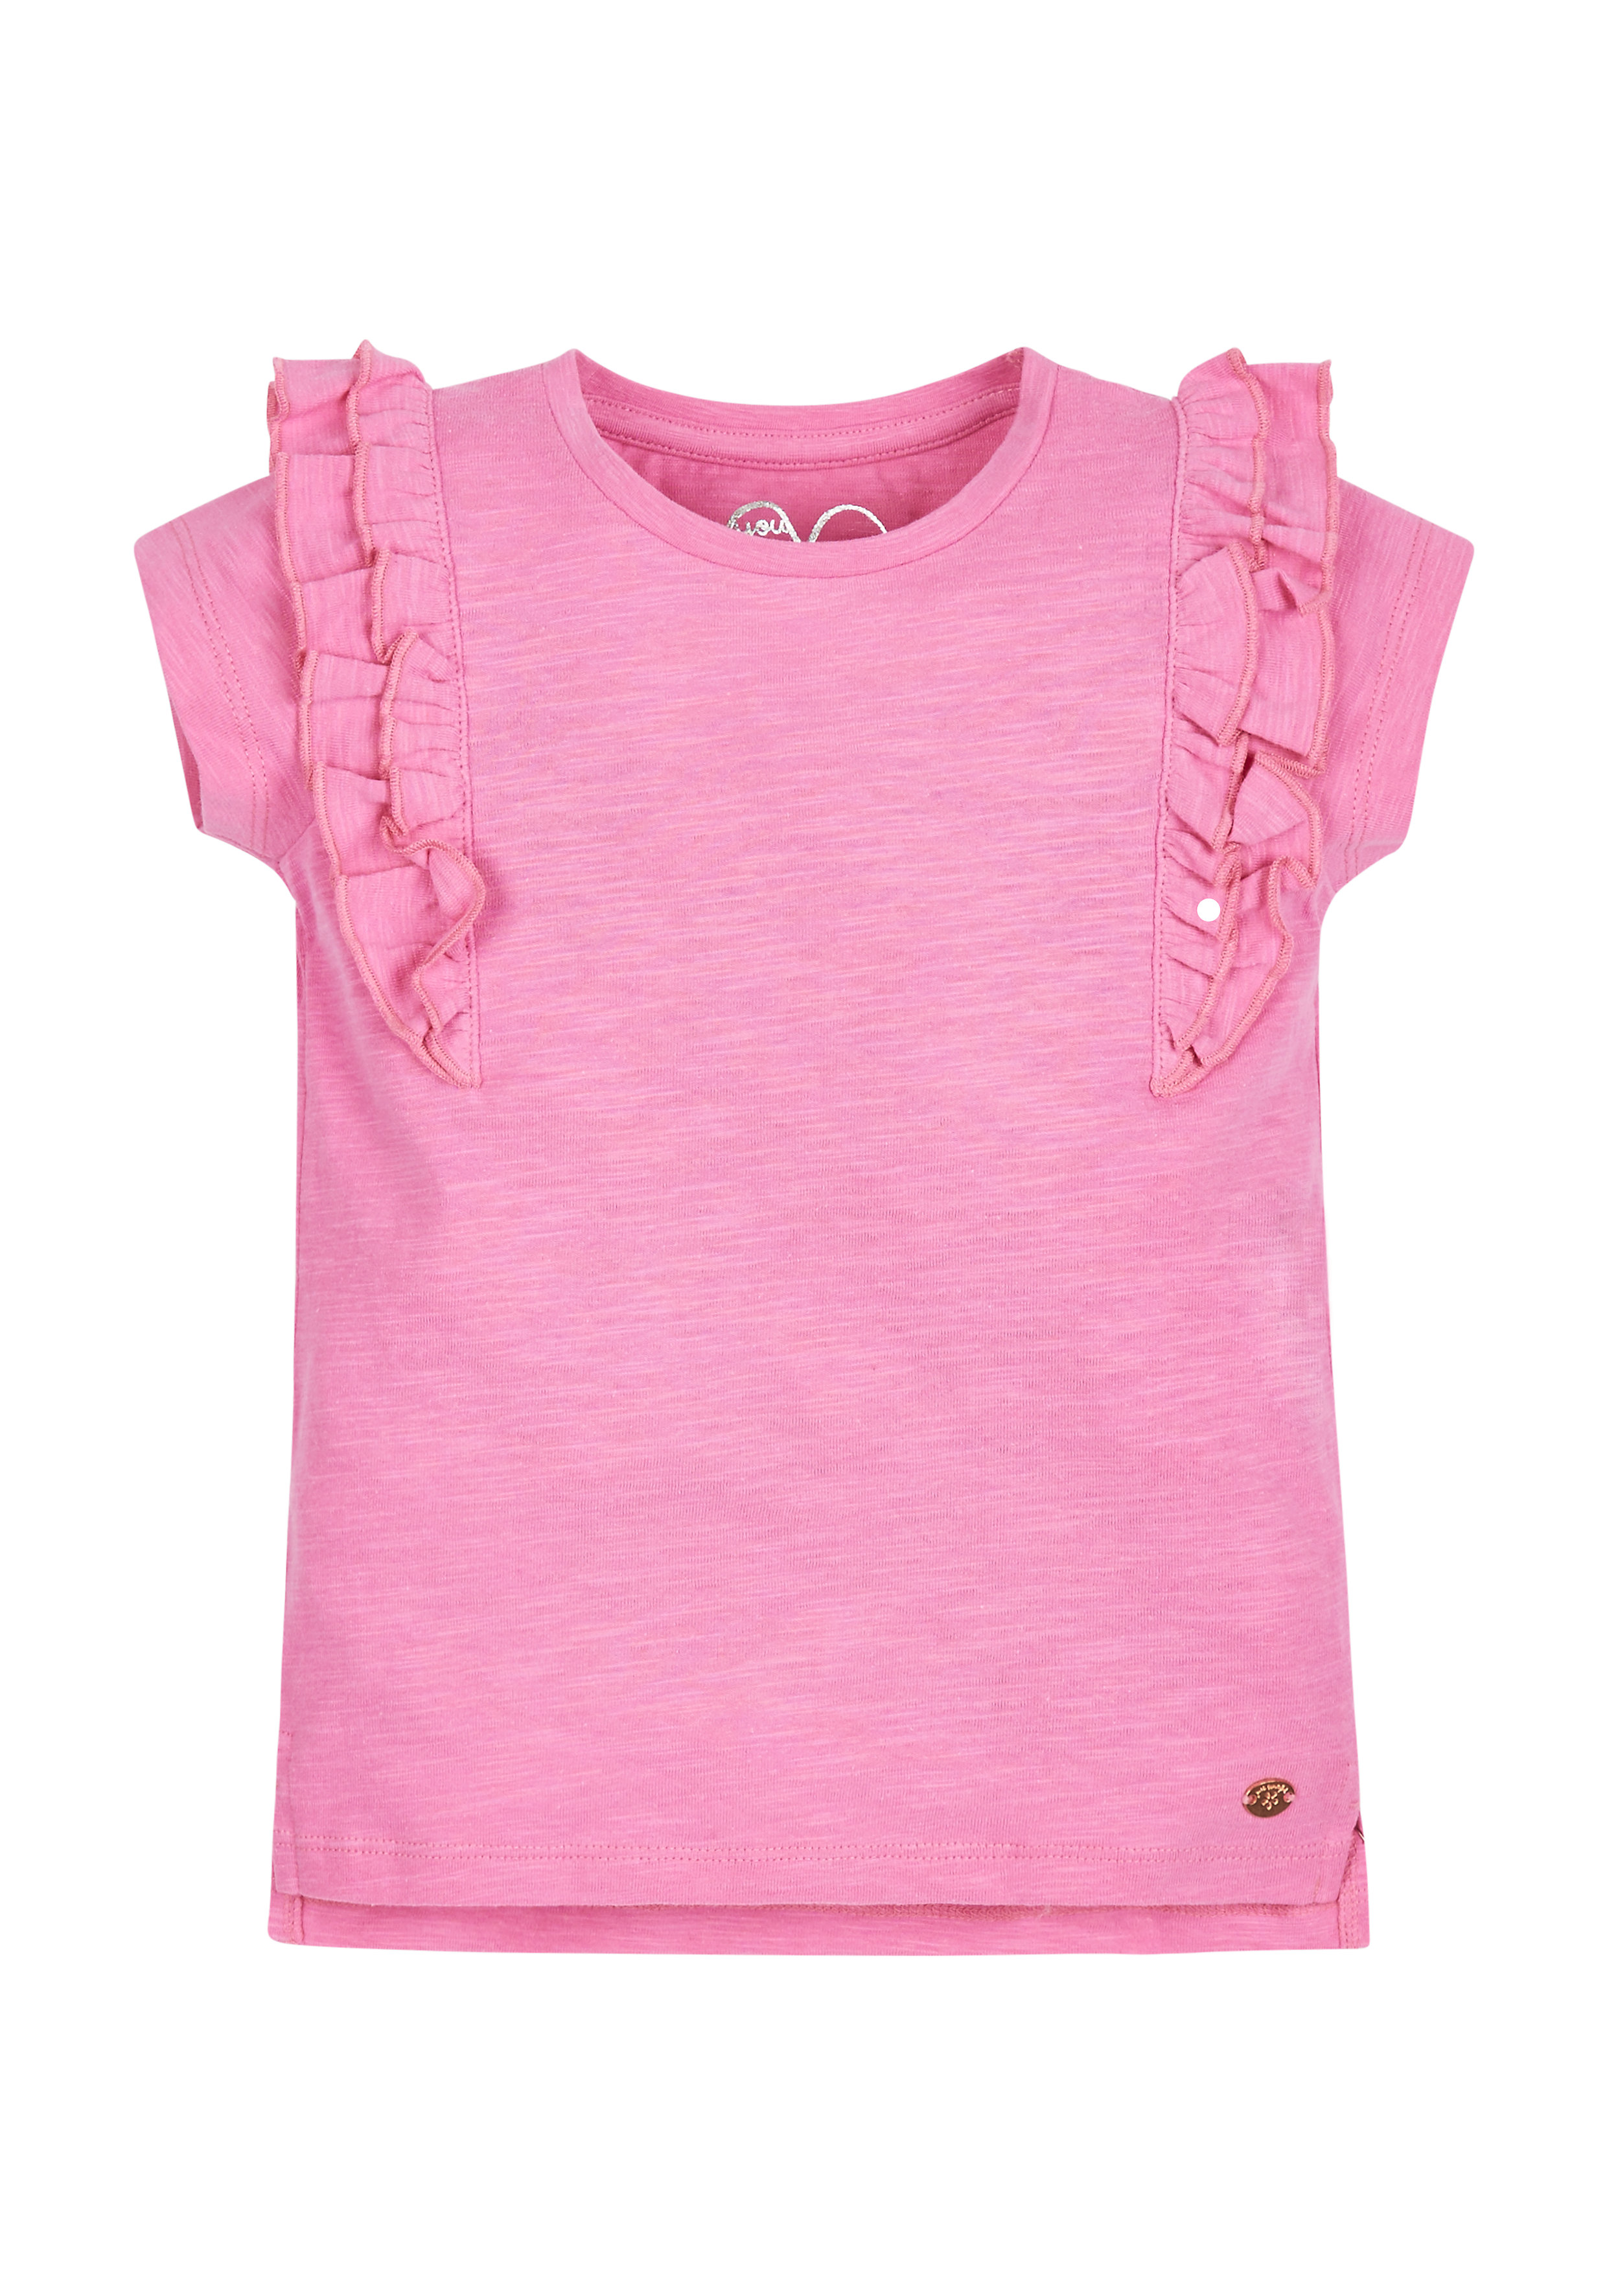 Mothercare | Girls Pink Frill Top - Pink